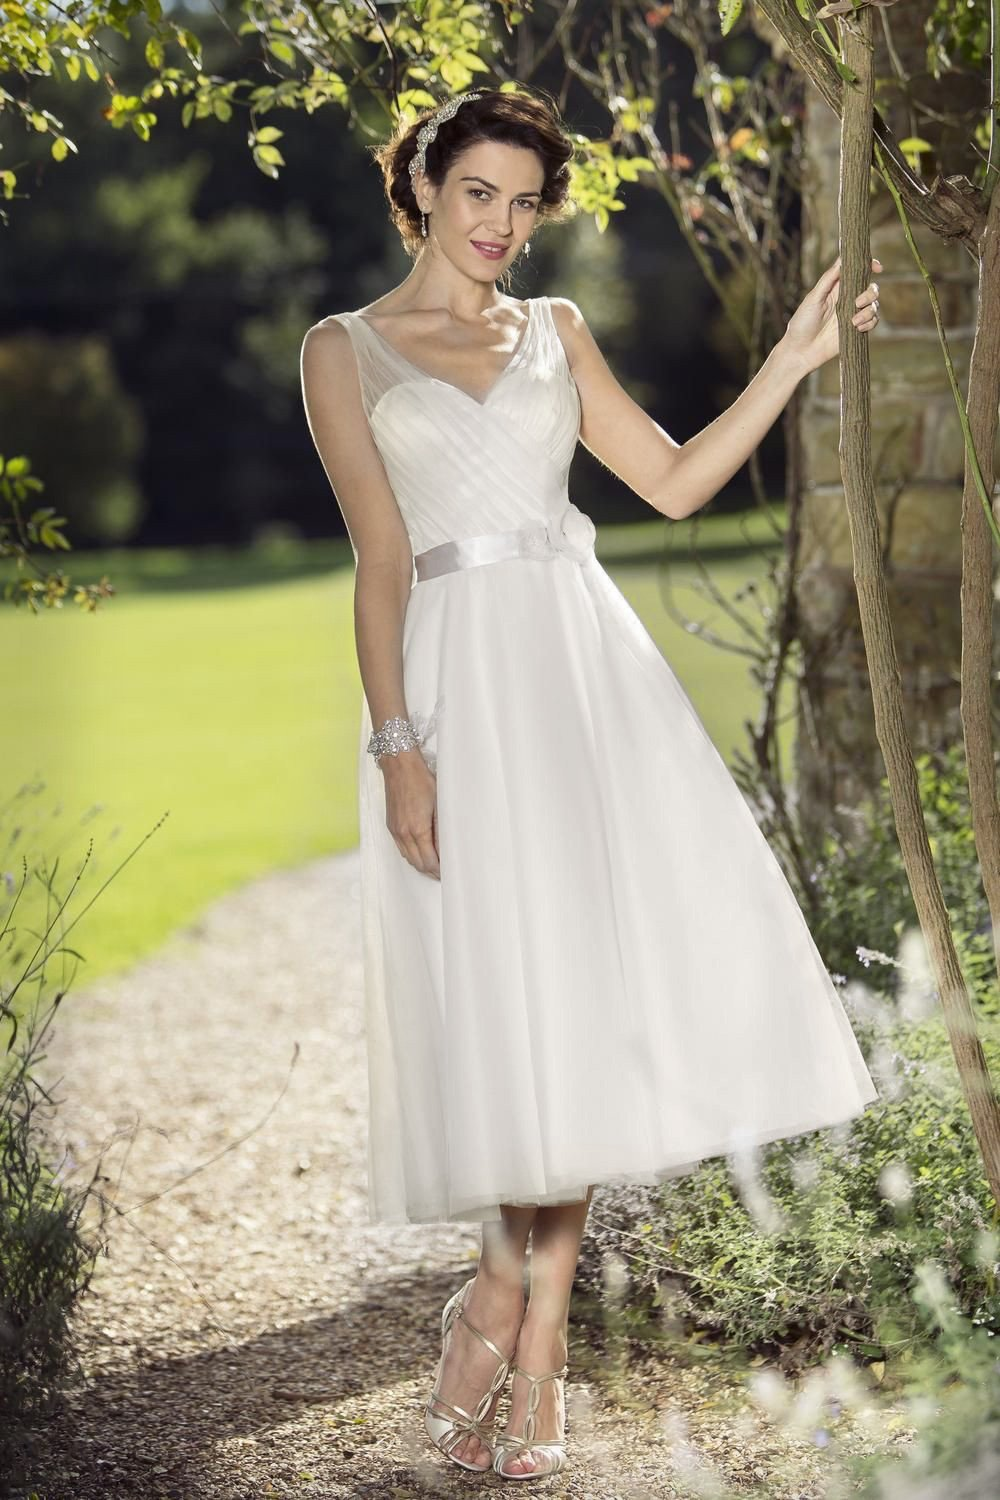 Fifties style shorter bridal gown by True Bride in our London shop ...